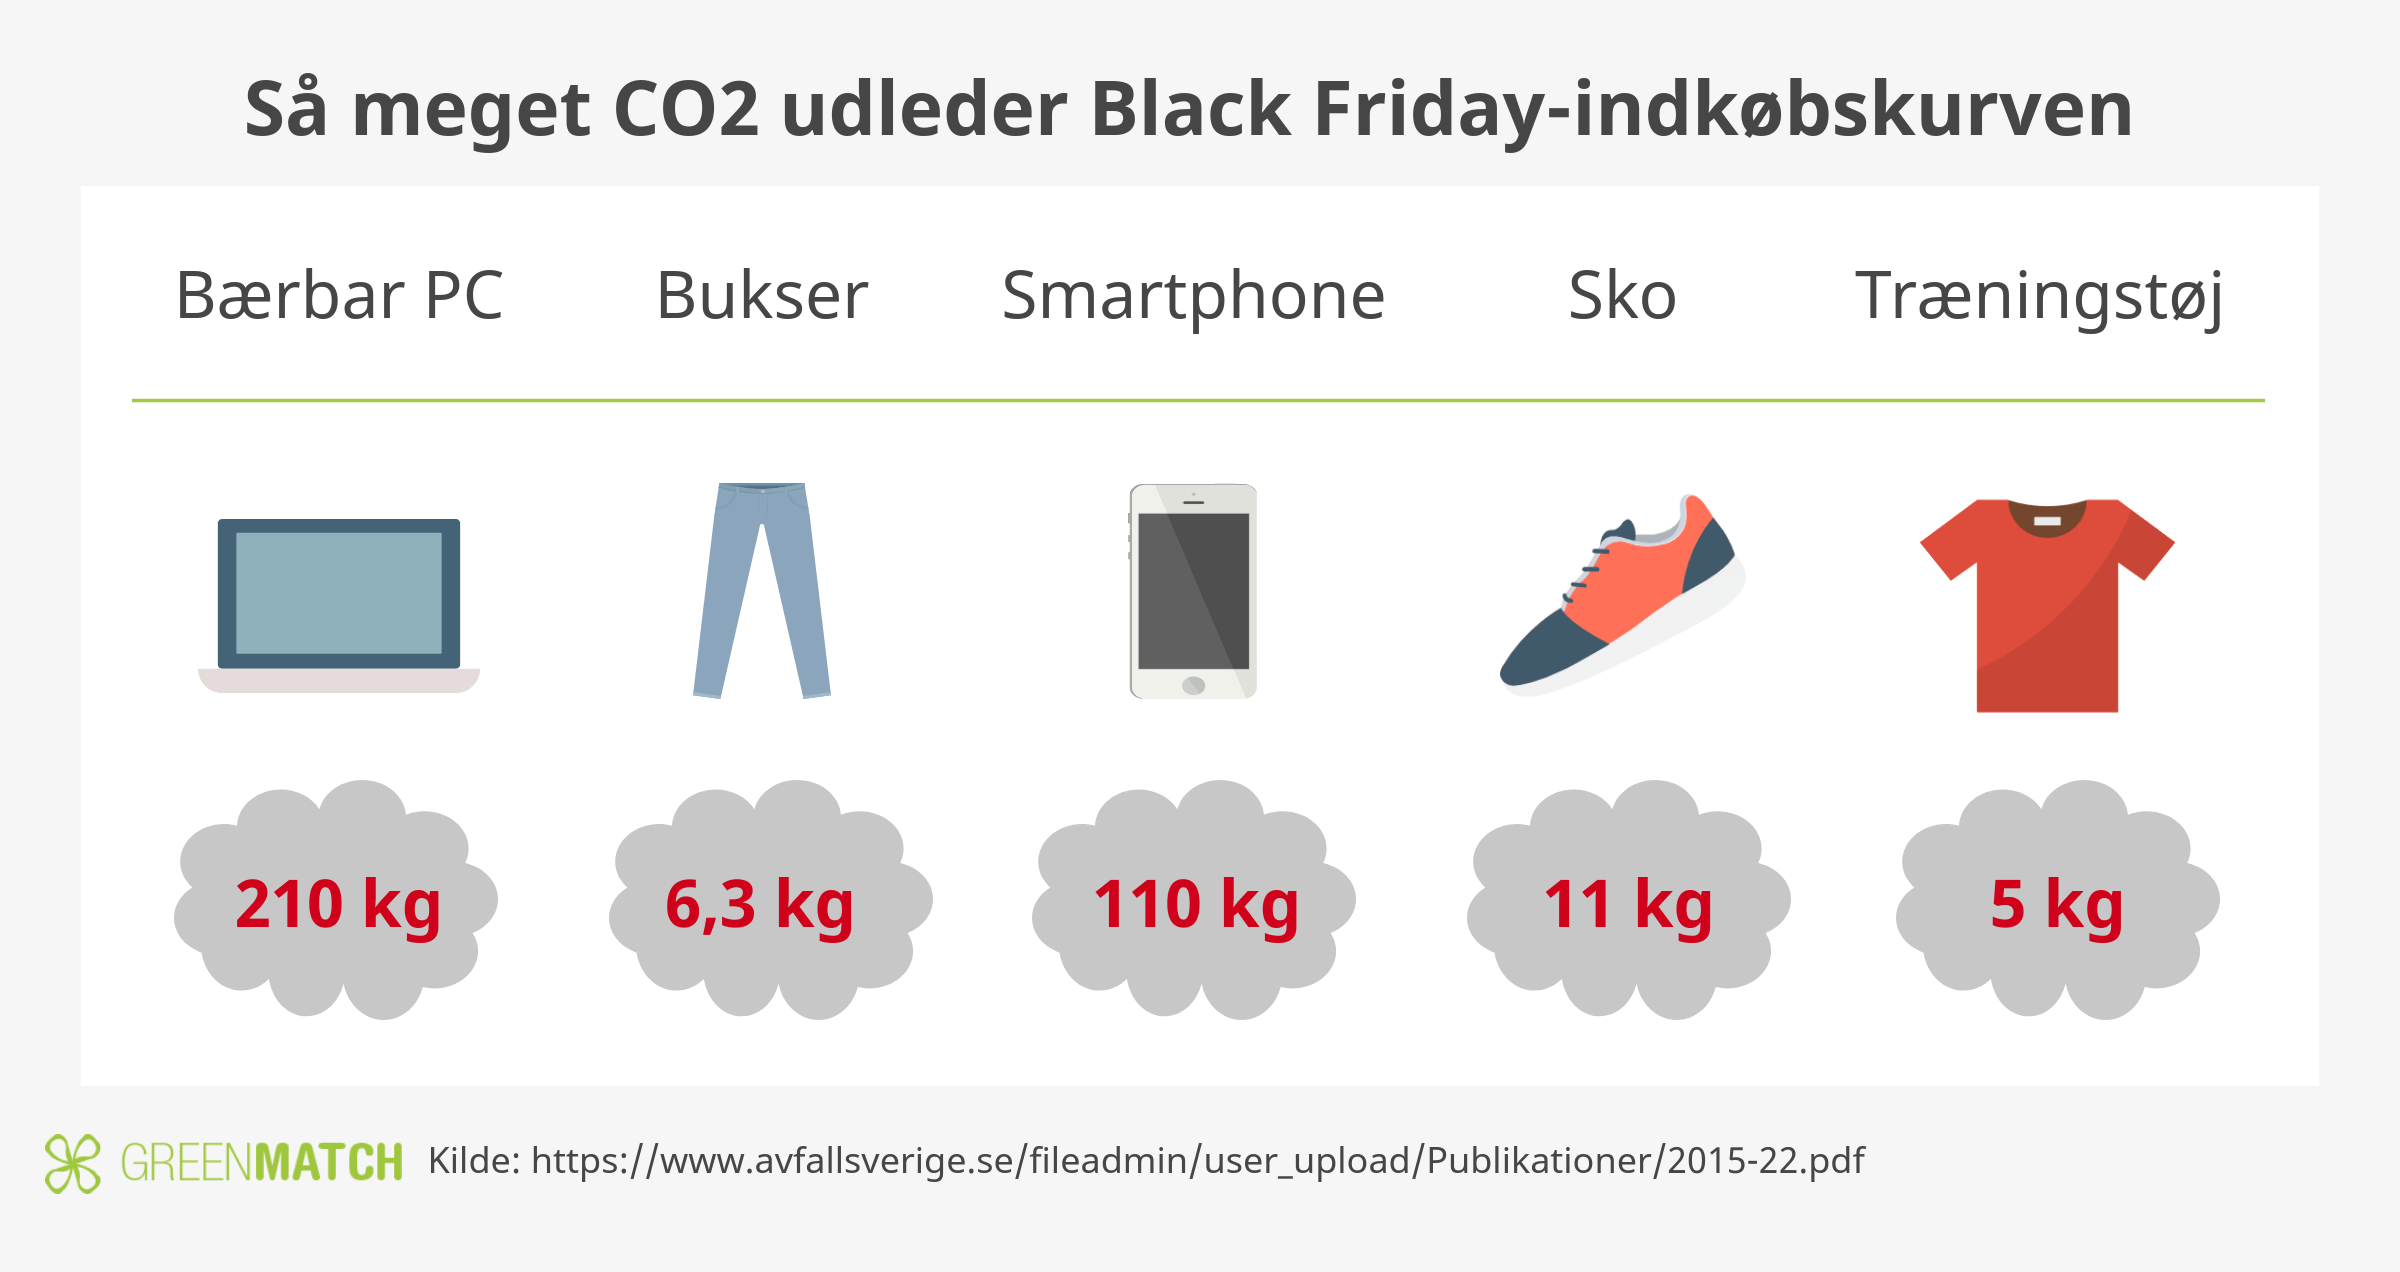 Så meget CO2 på Green Friday